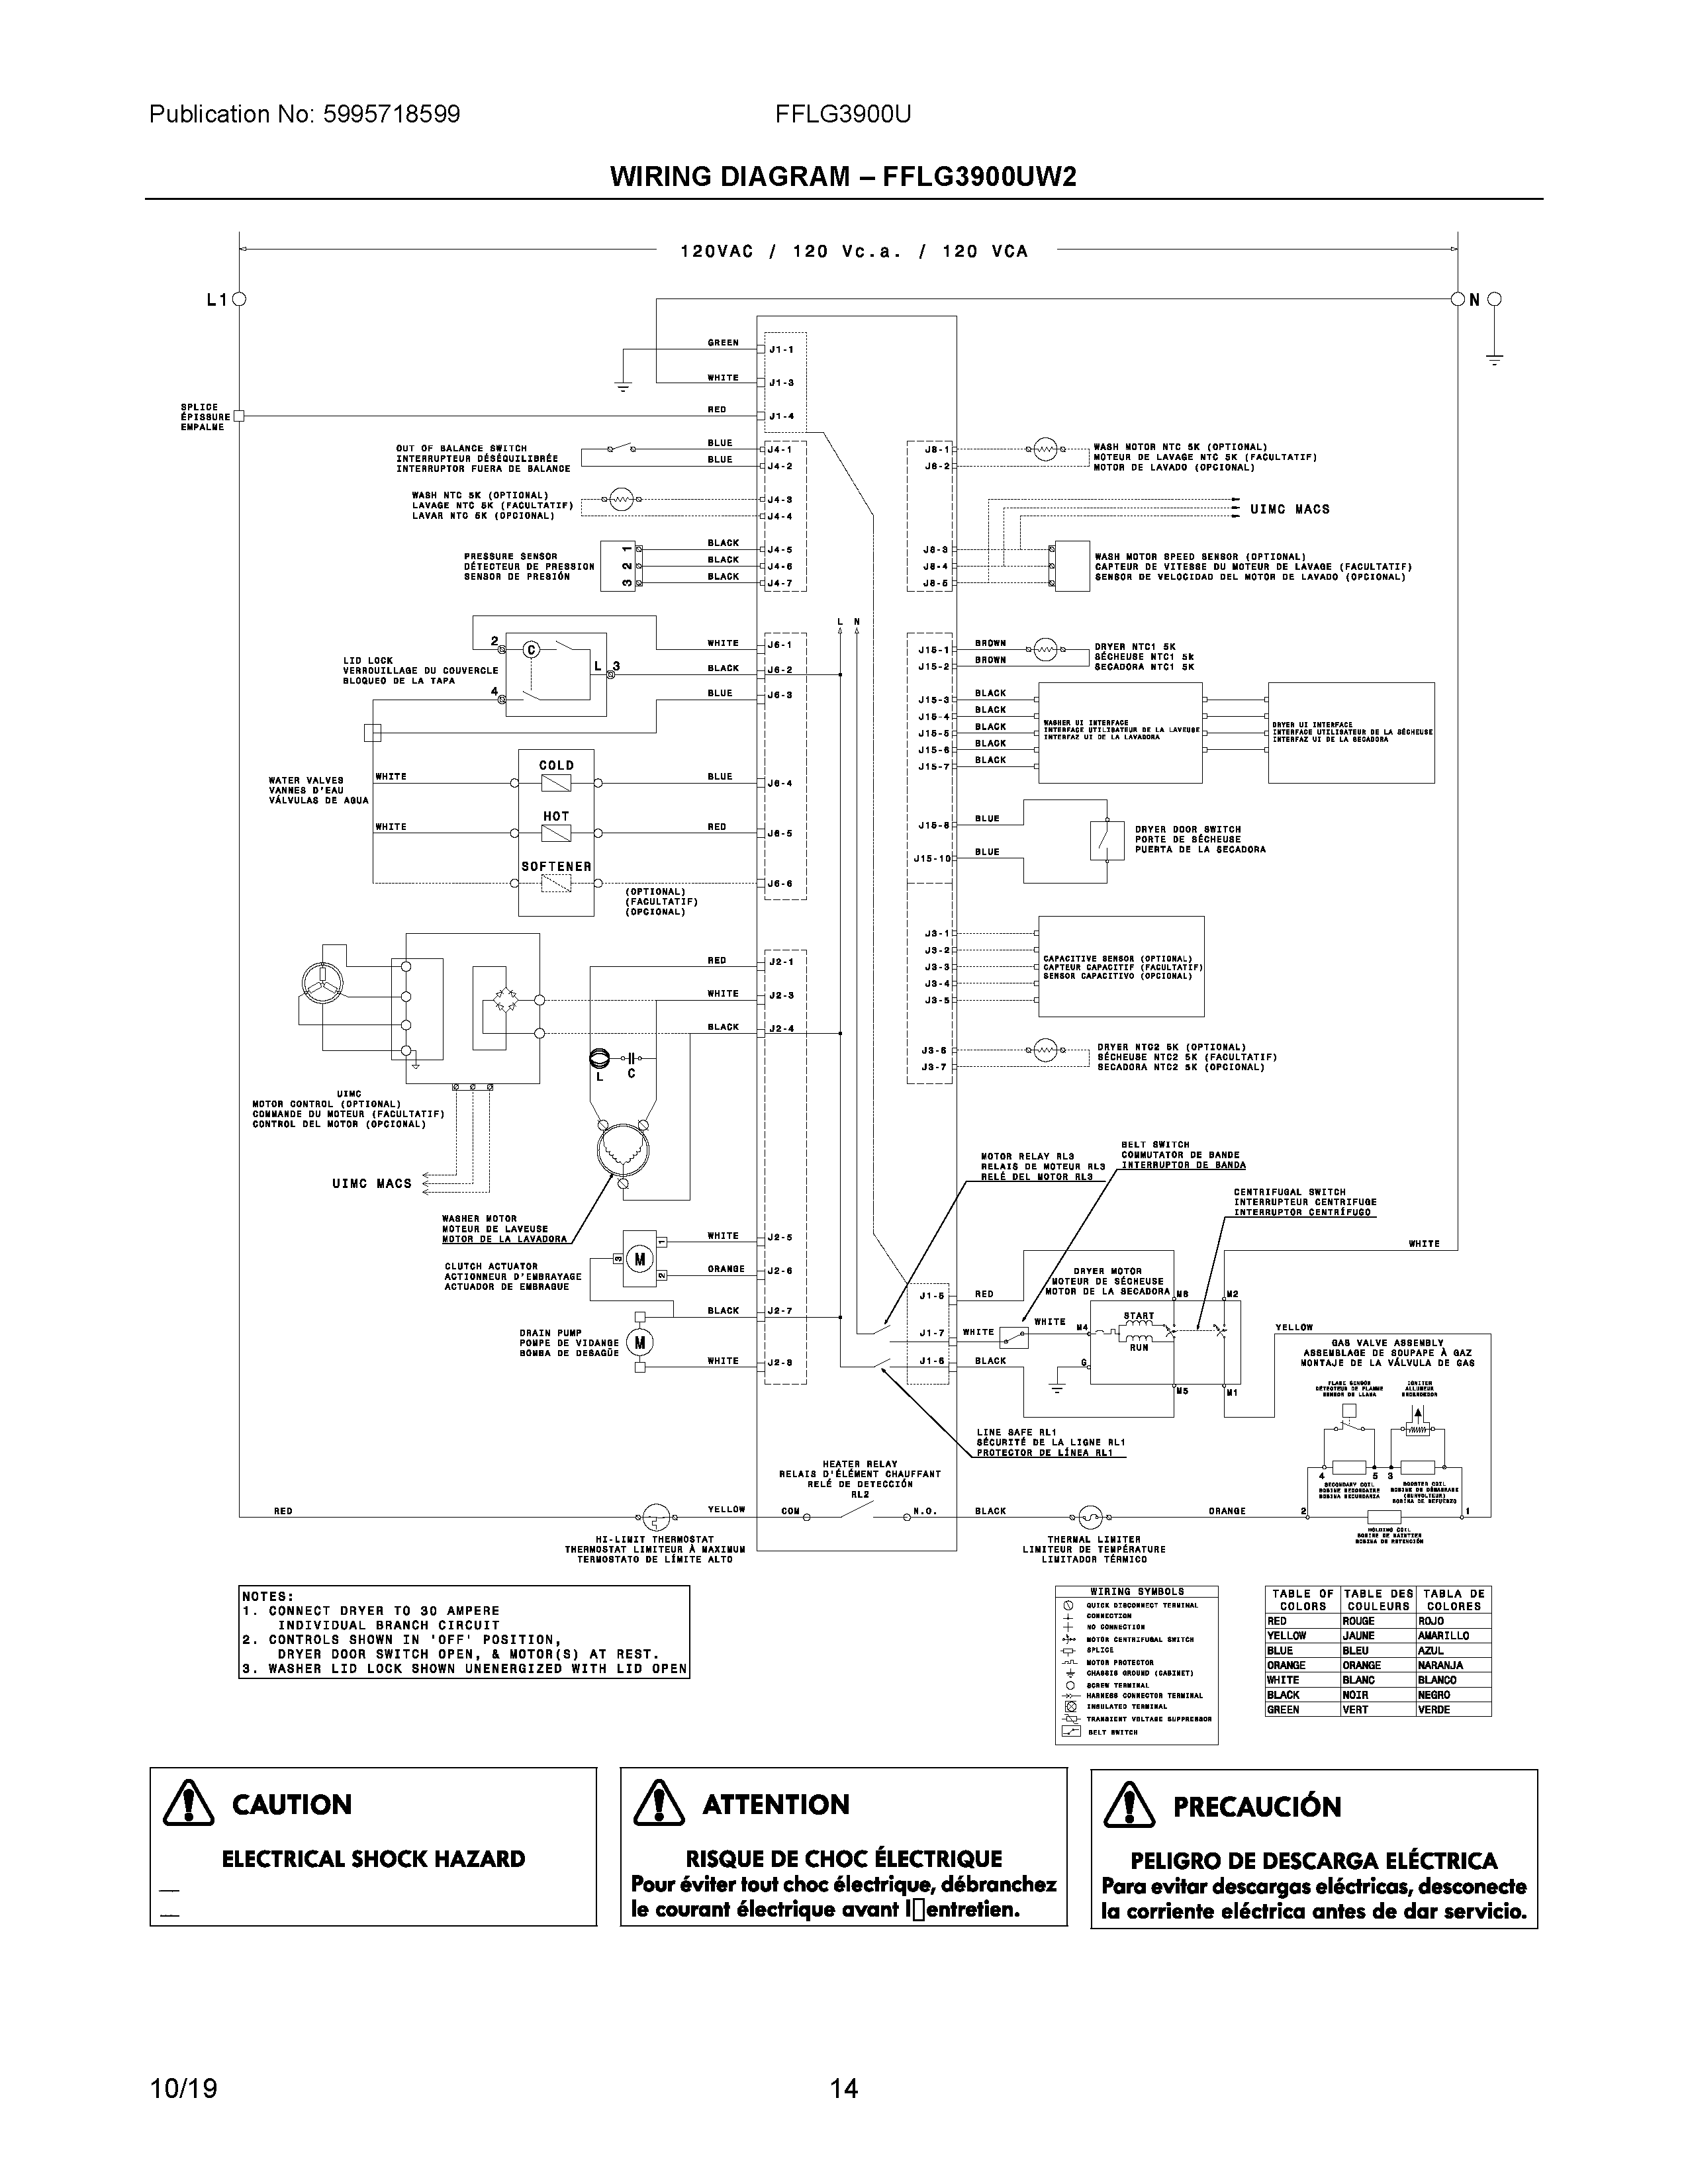 Parts and plans for Electrolux Laundry Center, Washer/gas Dryer model:  FFLG3900UW5 at MidbecMidbec